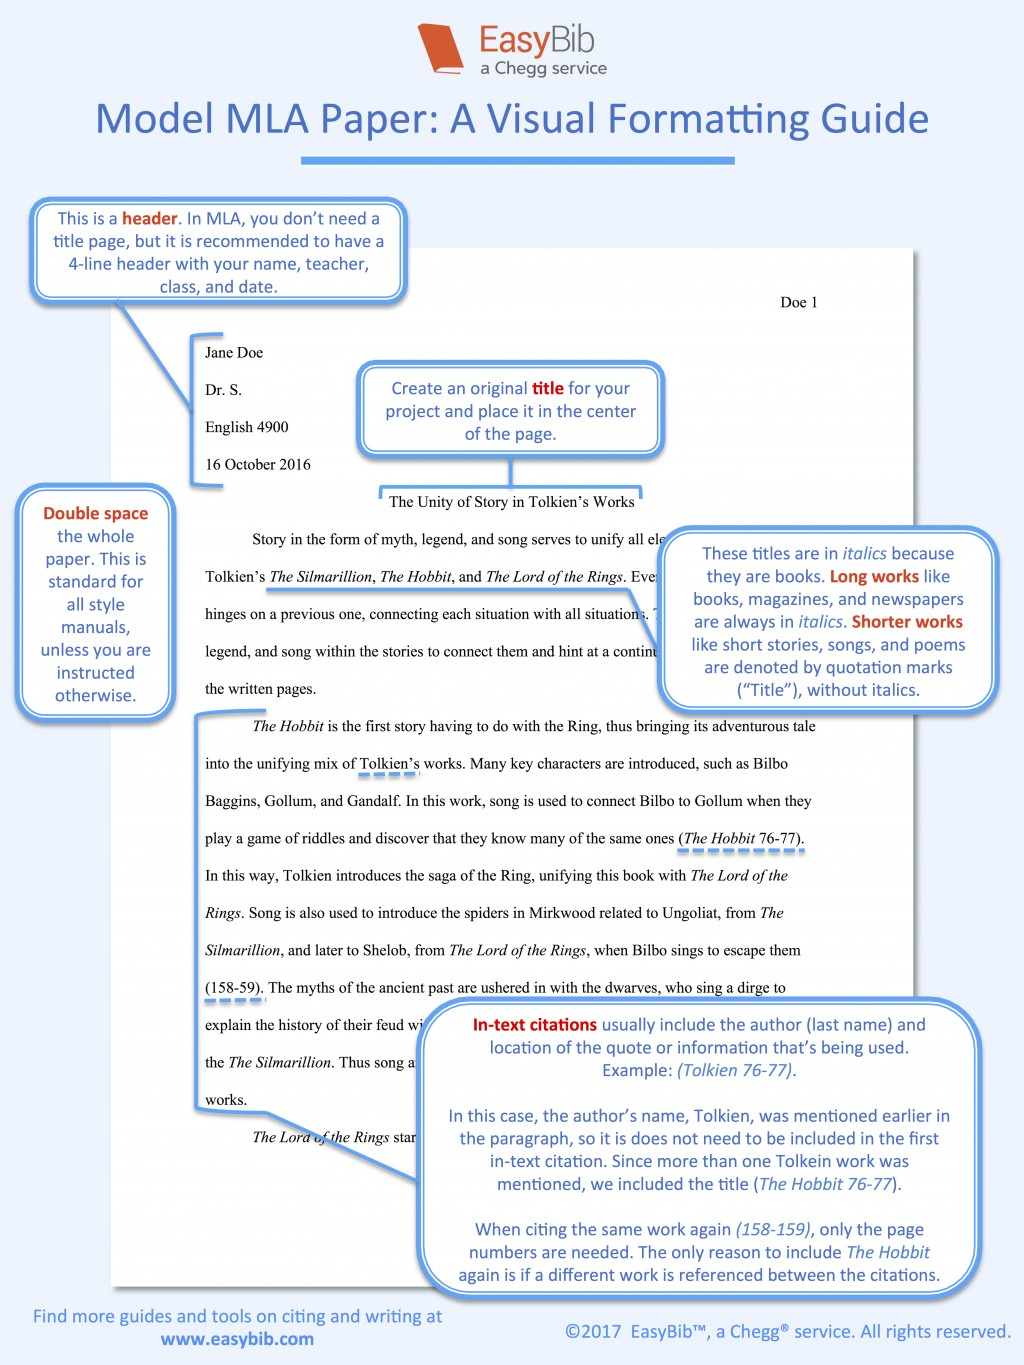 002 Mla Research Paper Citation Format Model Imposing In Text Citing A Large